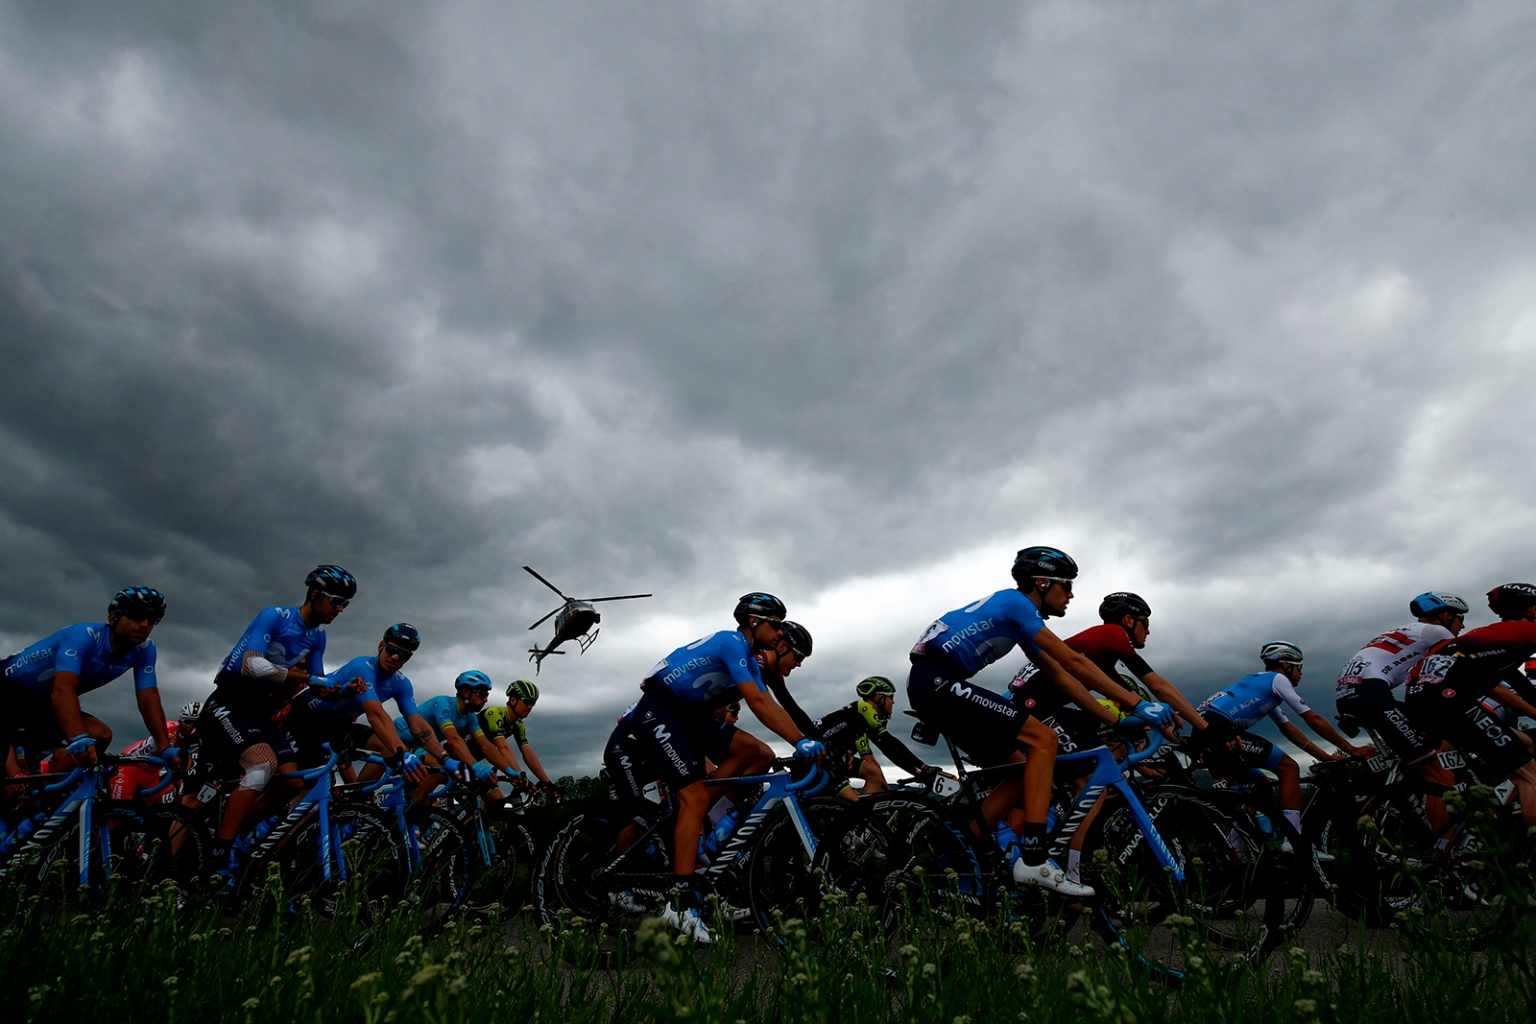 Riders compete during stage three of the 102nd Giro d'Italia—Tour of Italy—cycle race from Vinci to Orbetello on May 13. LUK BENIES/AFP/Getty Images